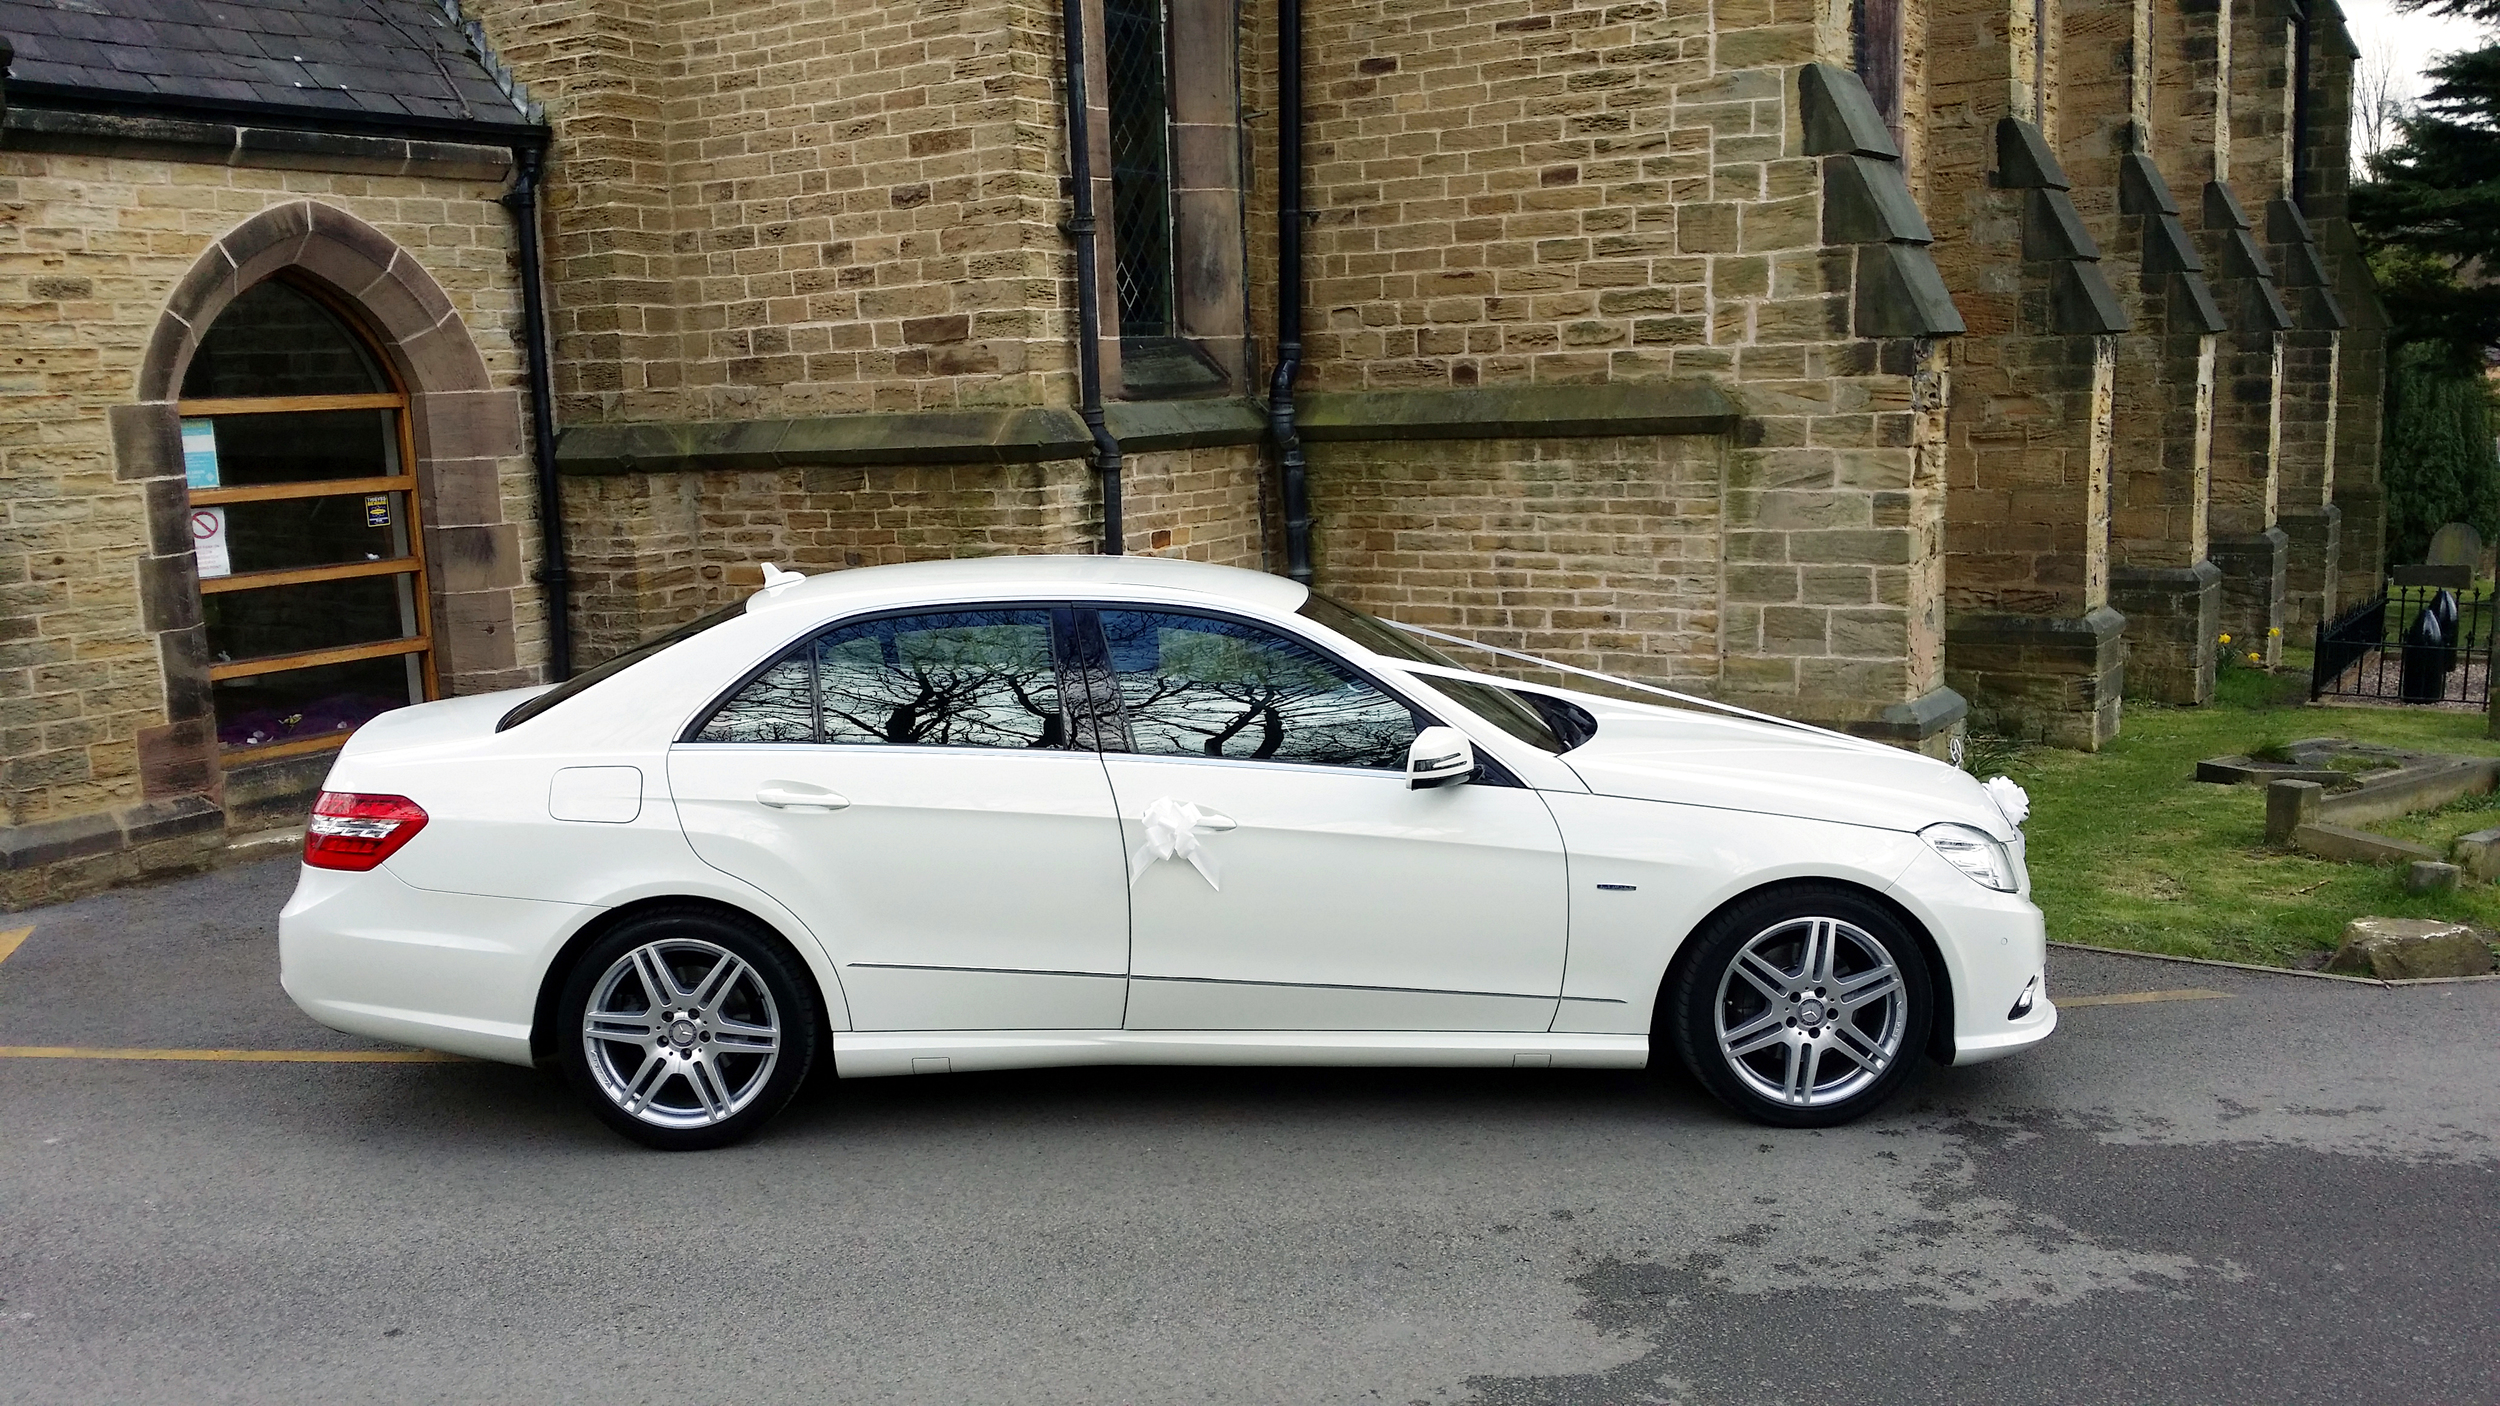 Wedding car at Holy Trinity Church, Thorpe Hesley